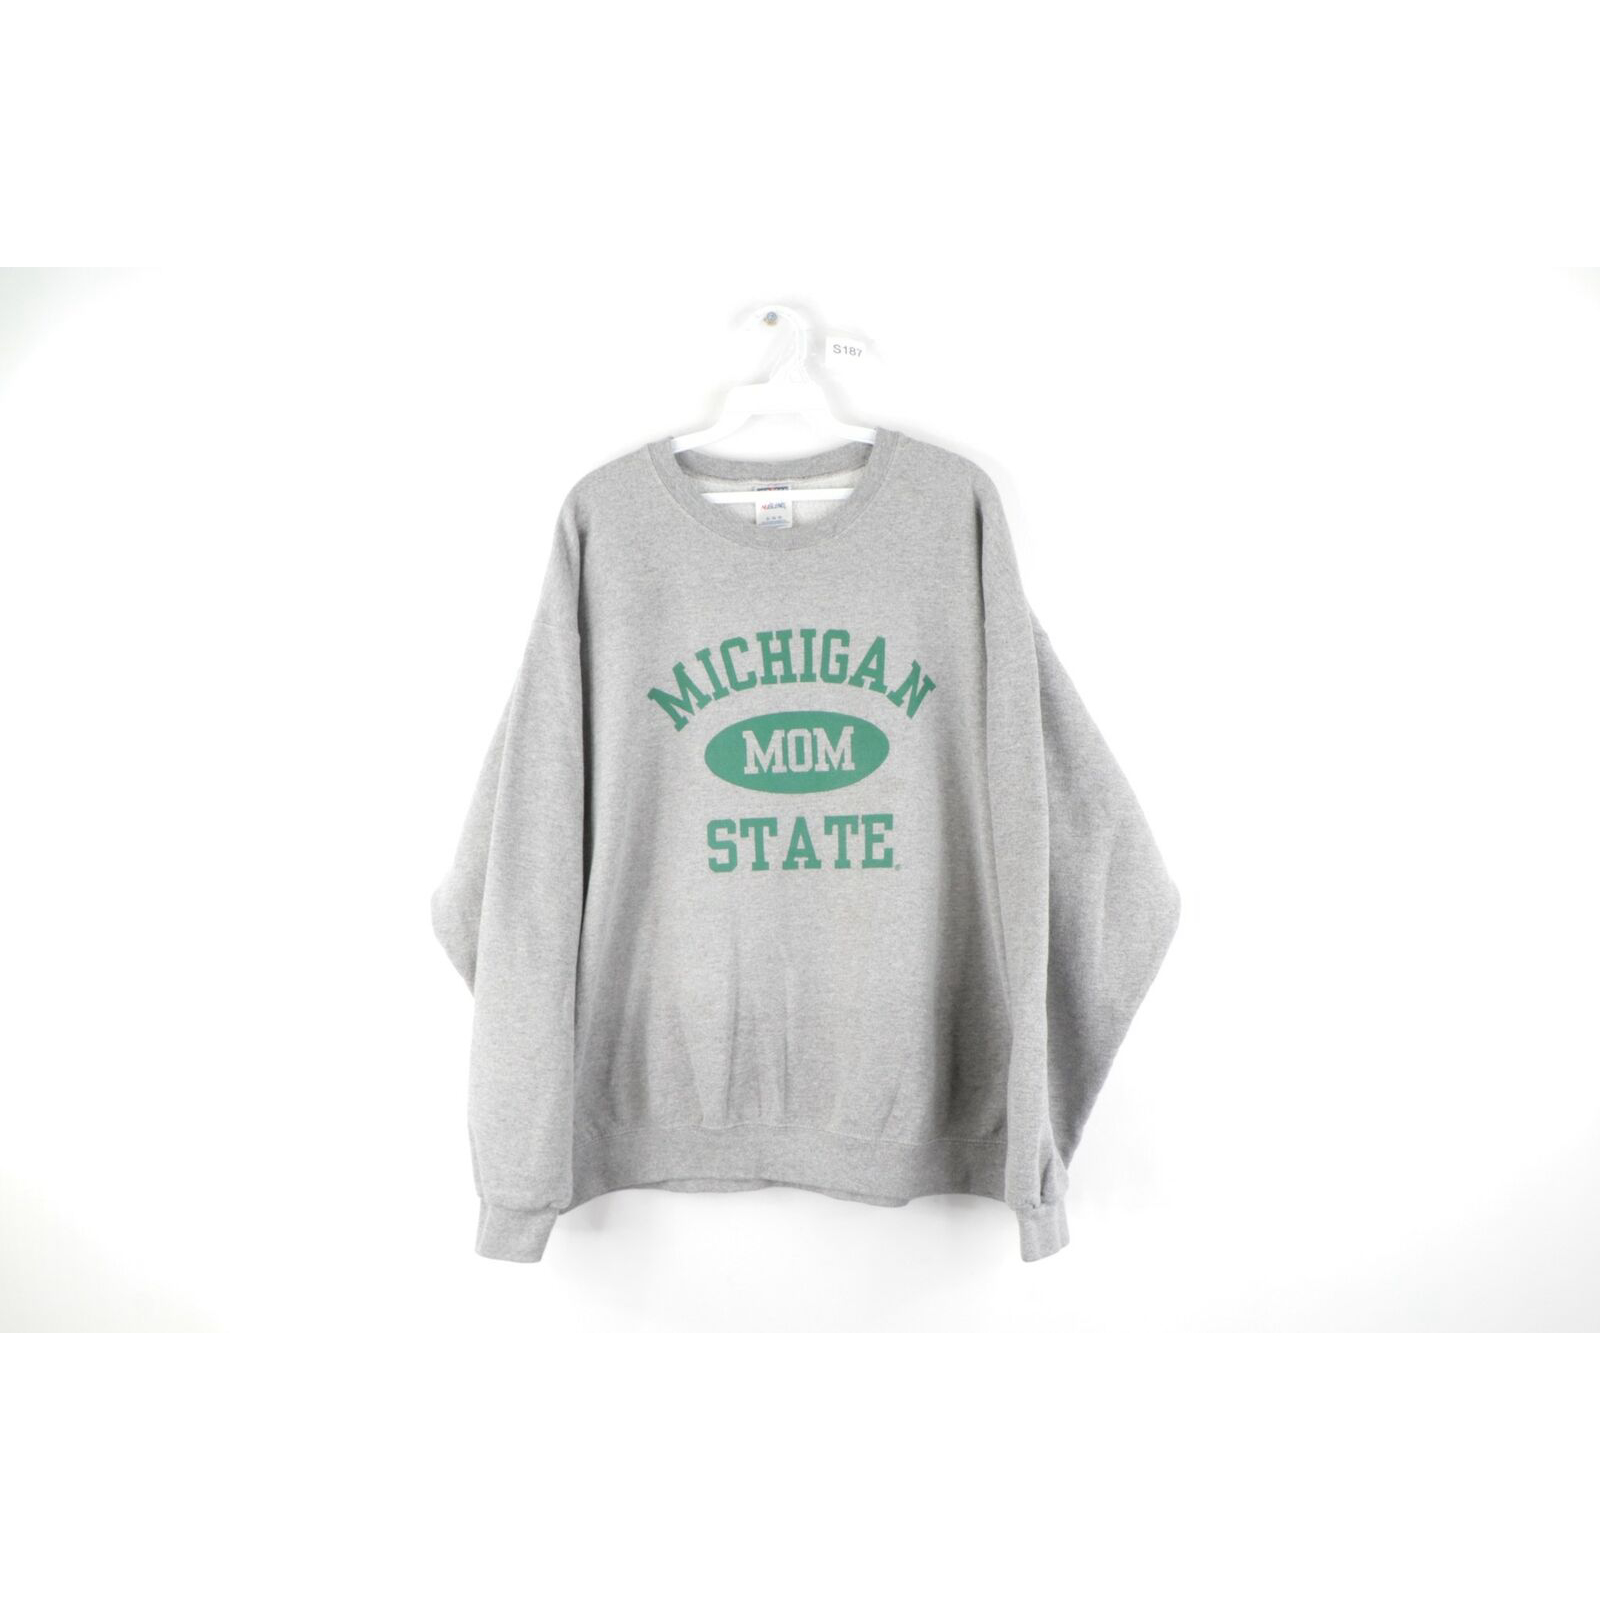 Product Image 1 - Vintage 90s Adult XL Michigan